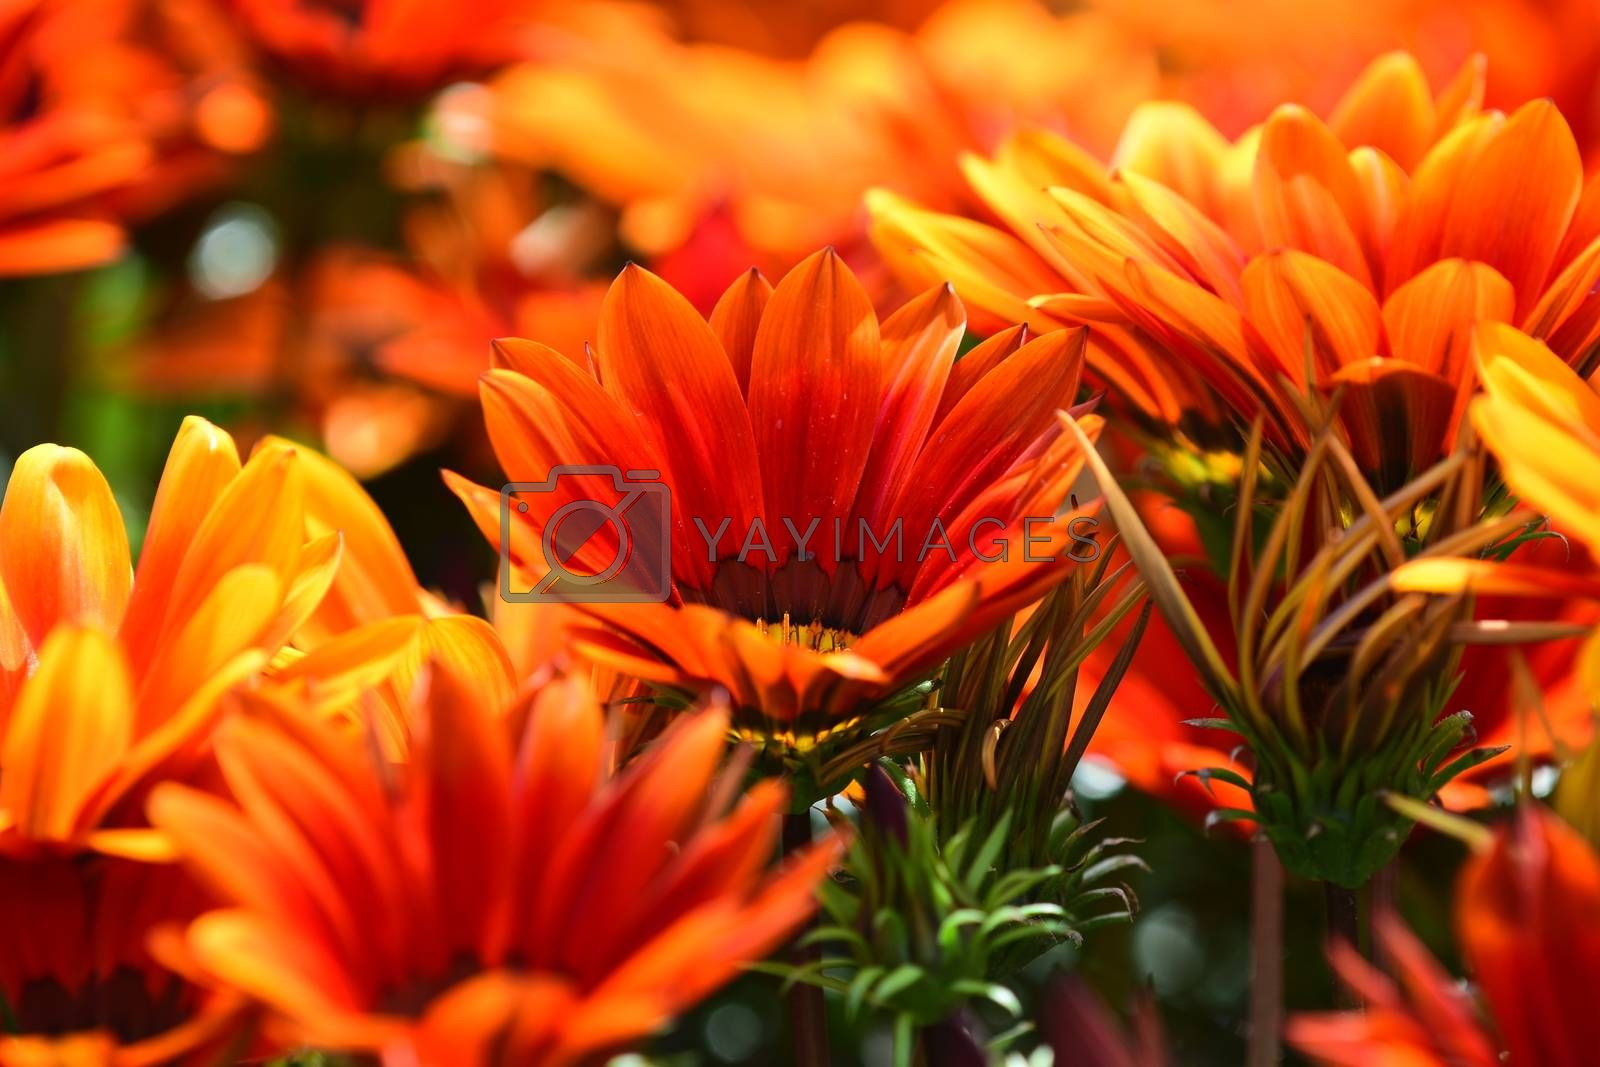 Close-up of a flower, beautiful flowers, being close to nature, bringing nature close to you, flowering African daisy